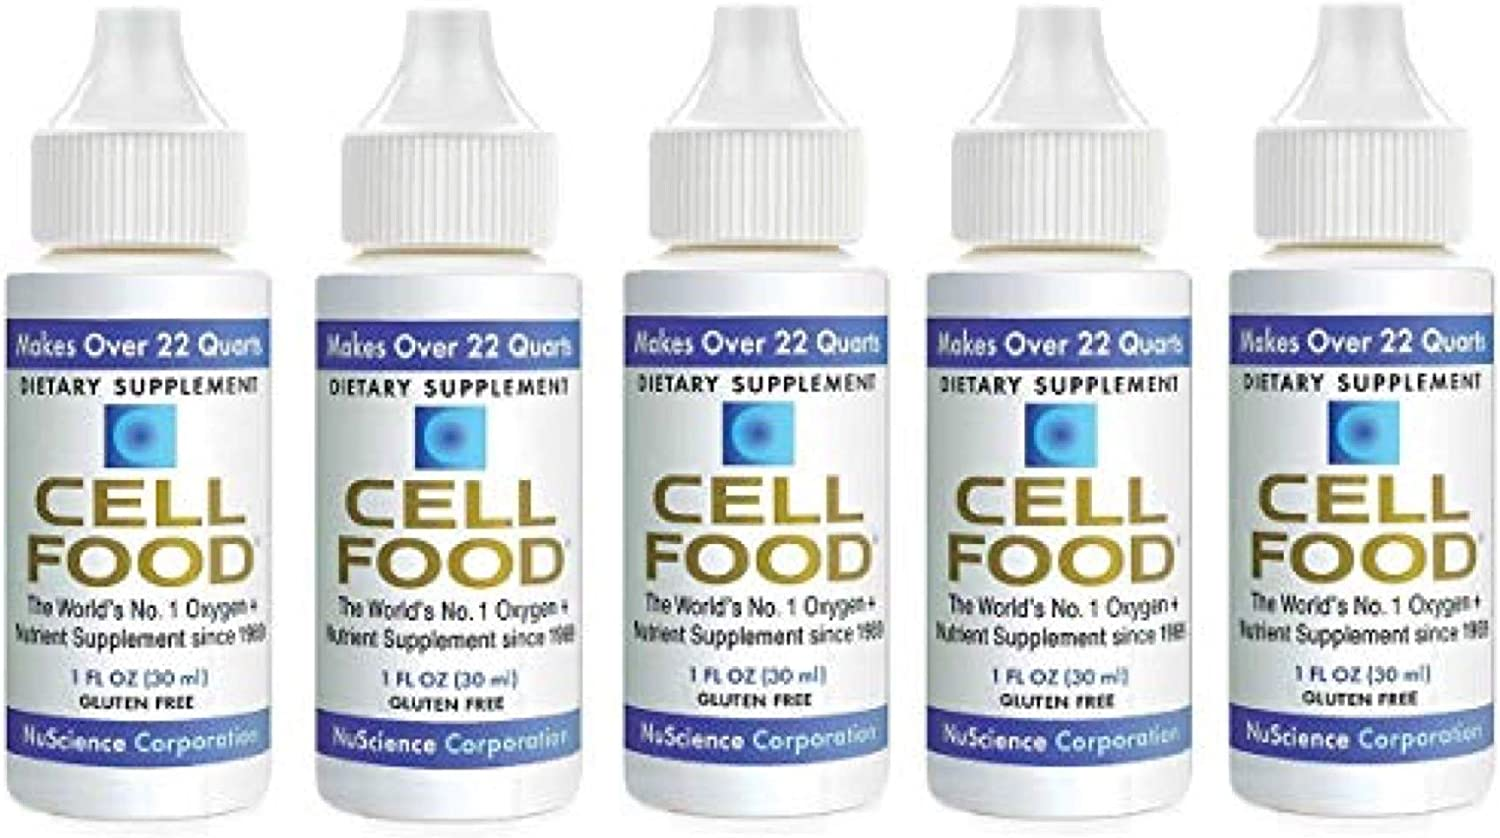 Cellfood Liquid Concentrate, 1 oz. (5 Pack) - Original Oxygenating Immune Support Formula - Seaweed Sourced Minerals, Enzymes, Amino Acids, Electrolytes - Gluten Free, Non-GMO, Certified Kosher